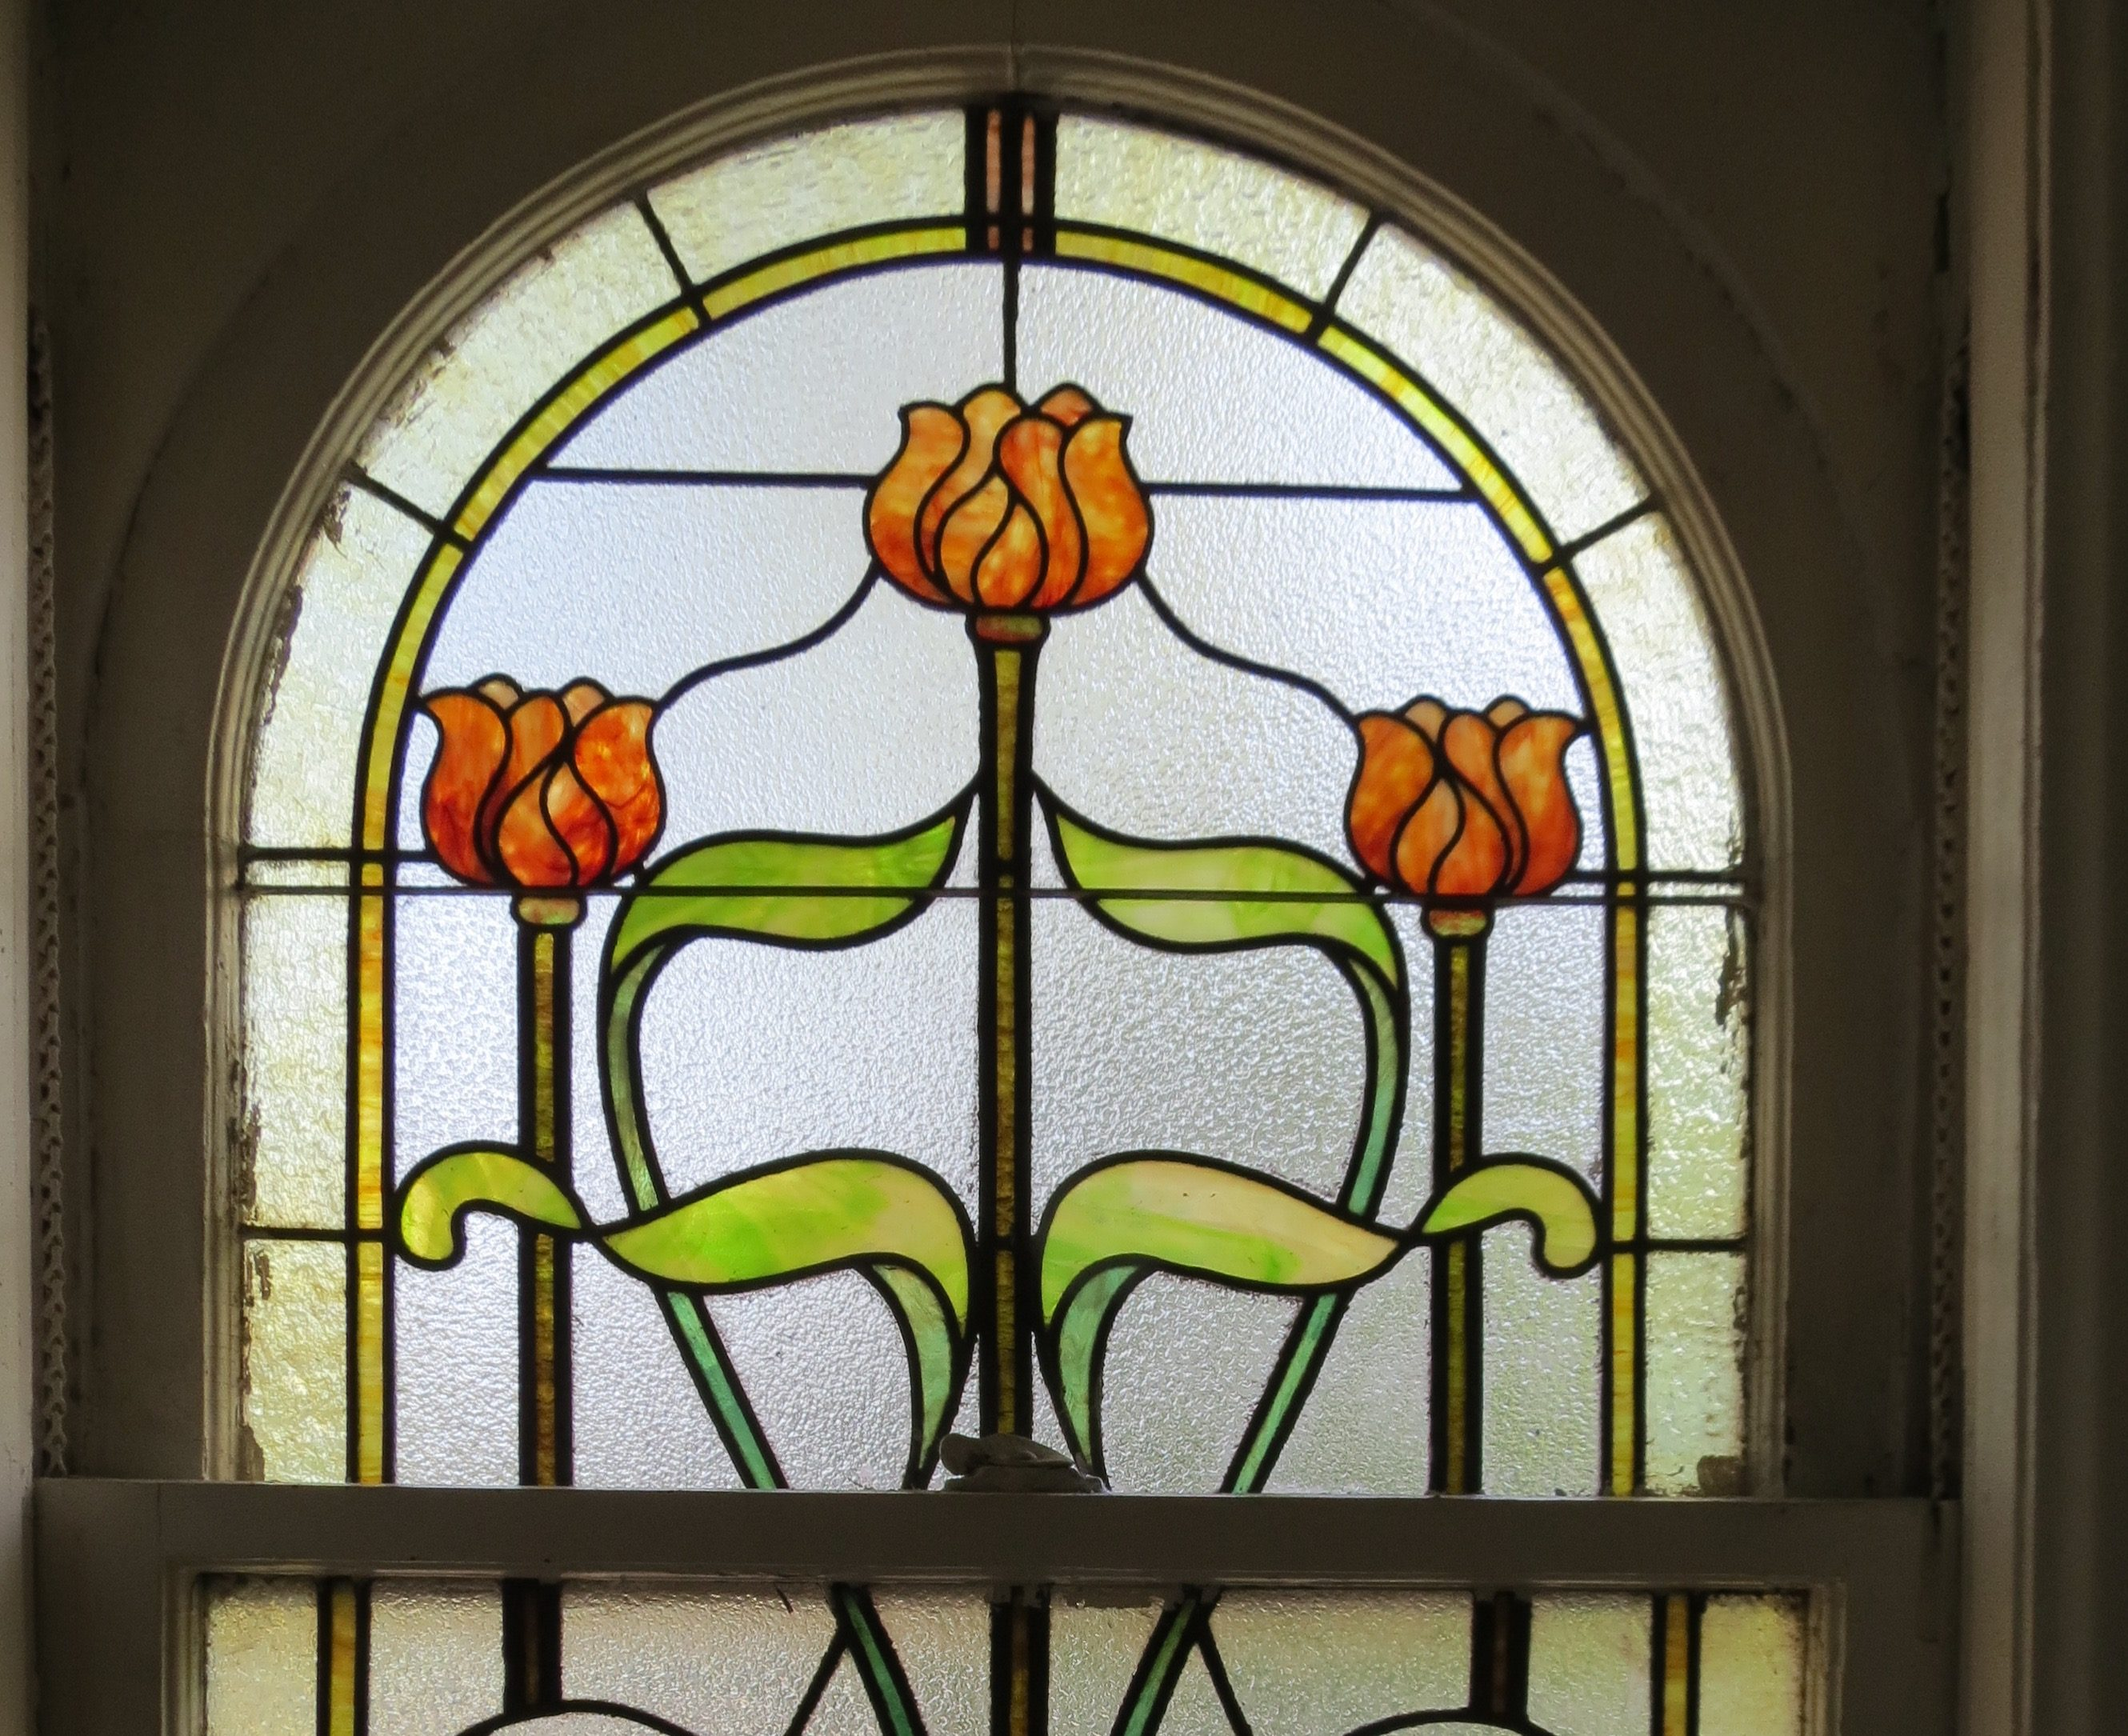 trust mccully art glass & restorations lafayette indiana for your stained glass repairs